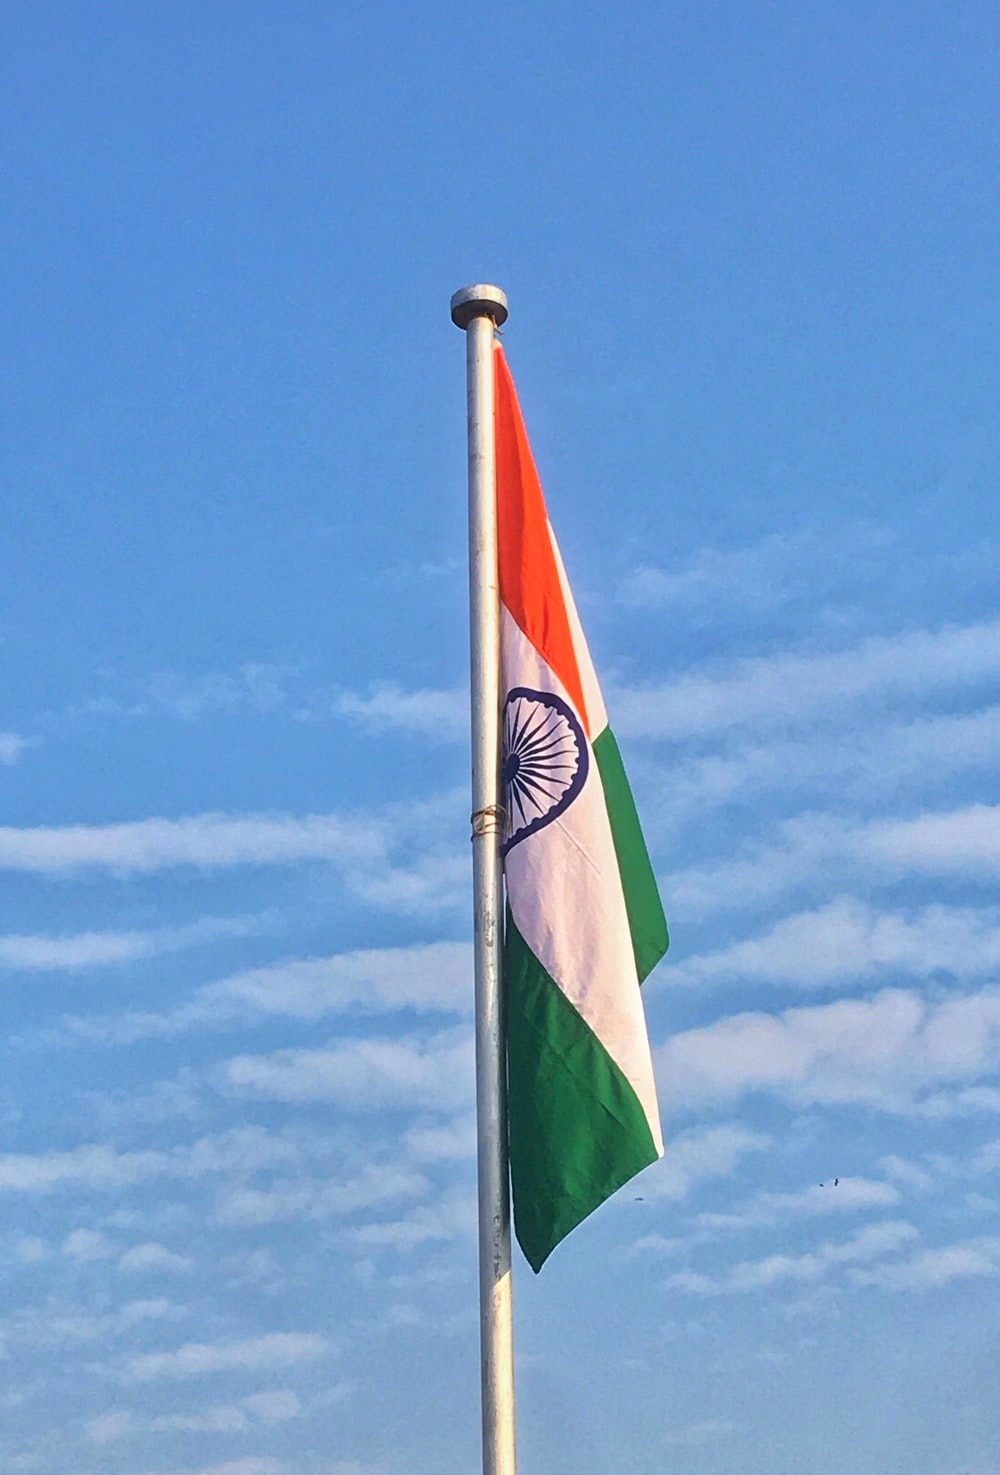 green white and red striped flag under blue sky during daytime